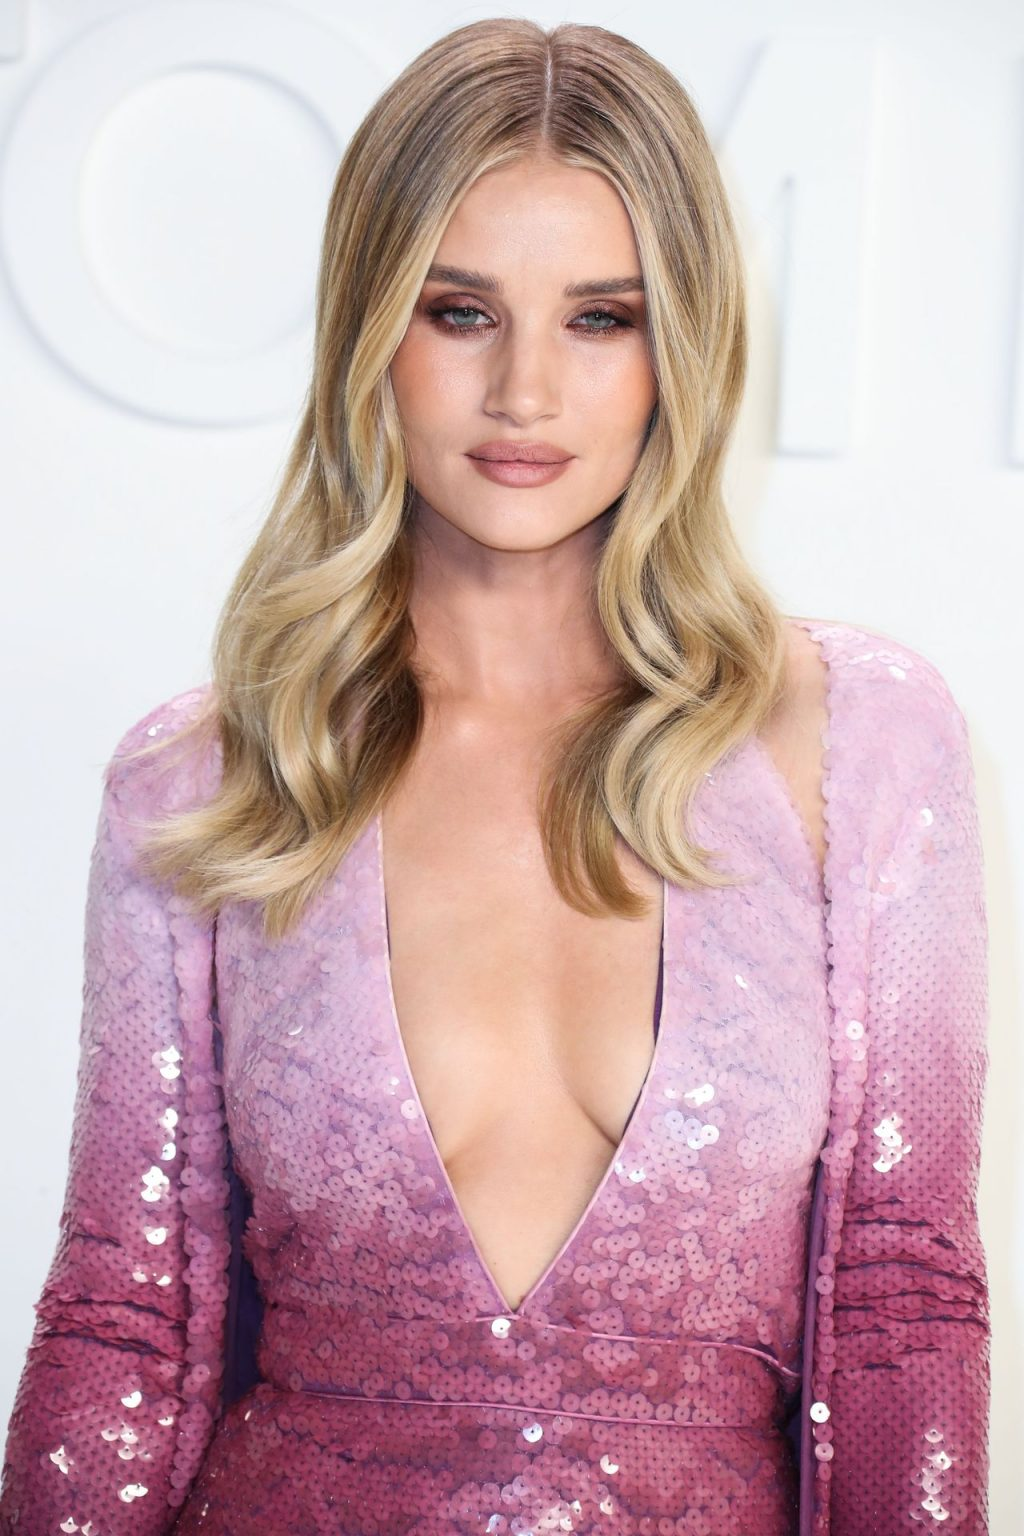 Rosie Huntington Whiteley Sexy The Fappening Blog 86 1024x1536 - Rosie Huntington-Whiteley Shows Her Cleavage at the Tom Ford Fashion Show (115 Photos)